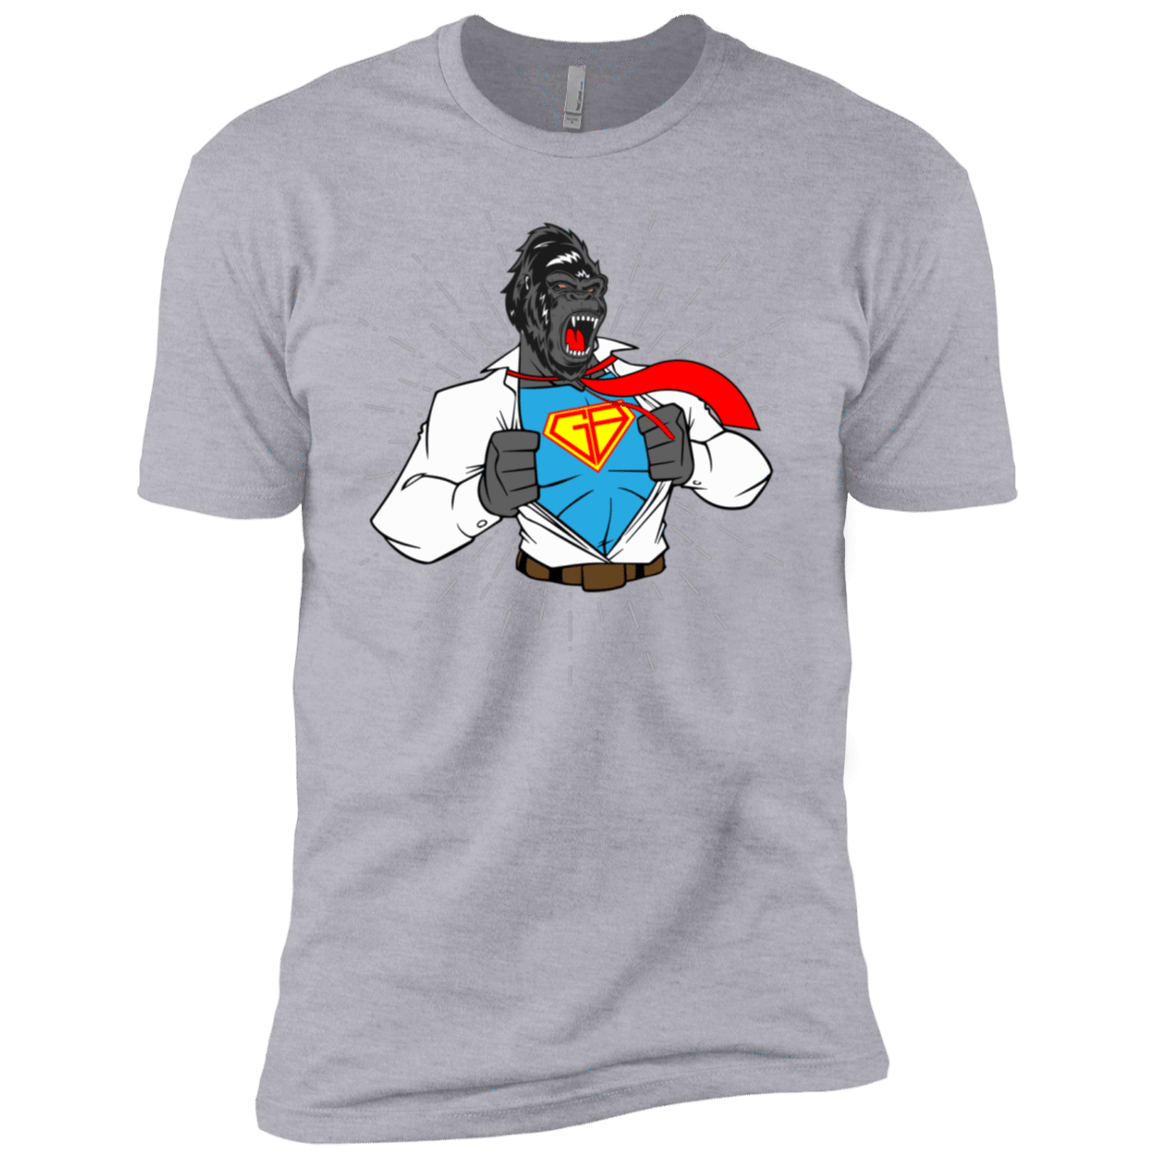 T-Shirts Heather Grey / X-Small SuperRilla Men's Extra Comfort Tee